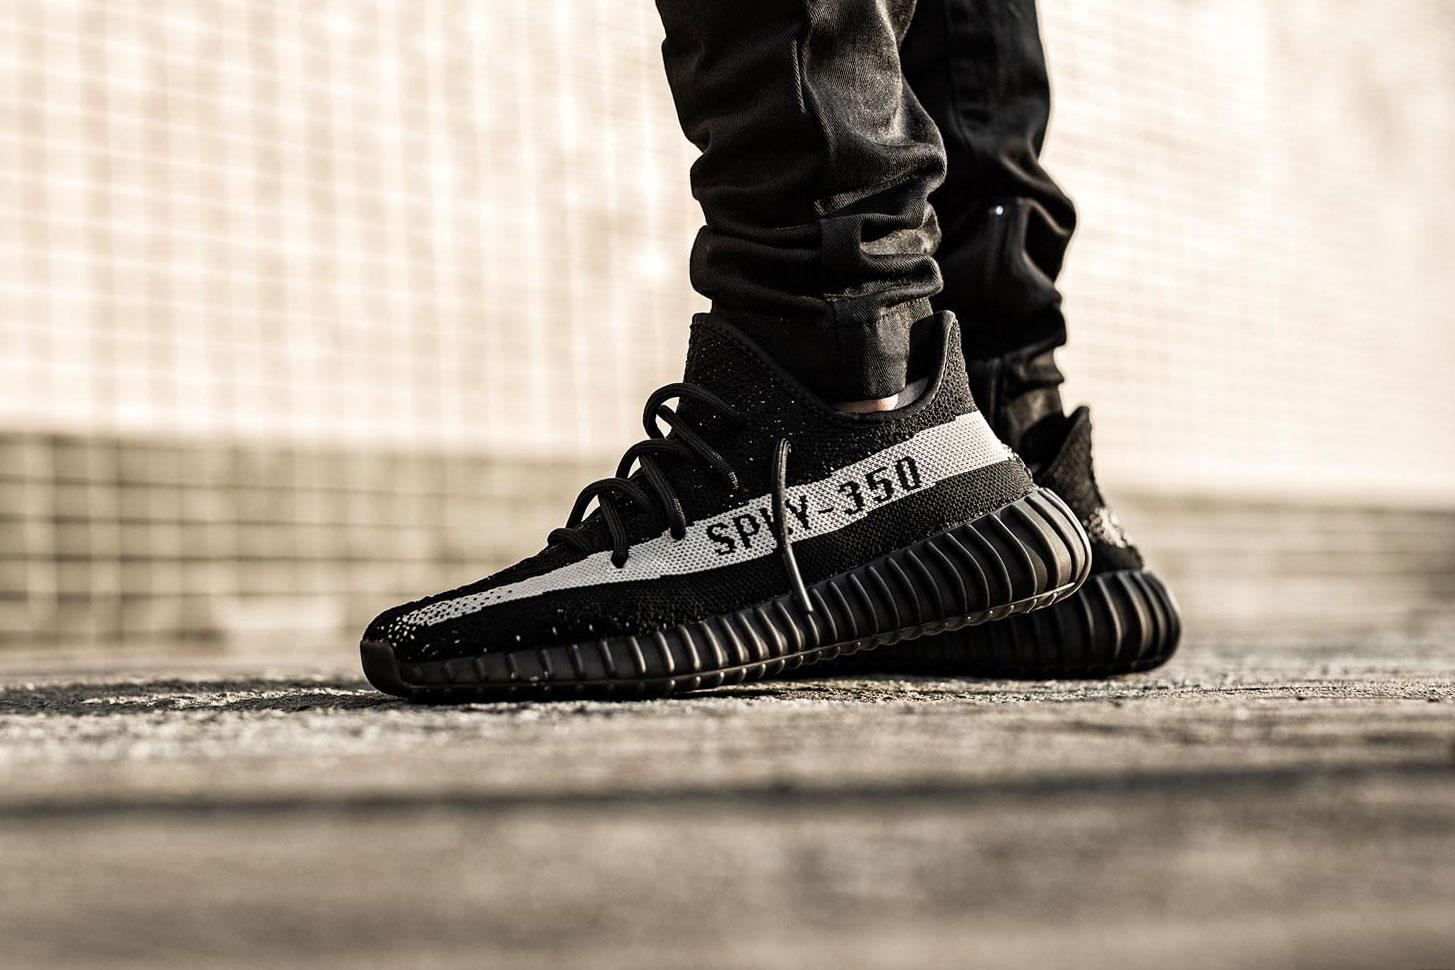 85% Off Yeezy boost 350 V2 black uk raffle Sale